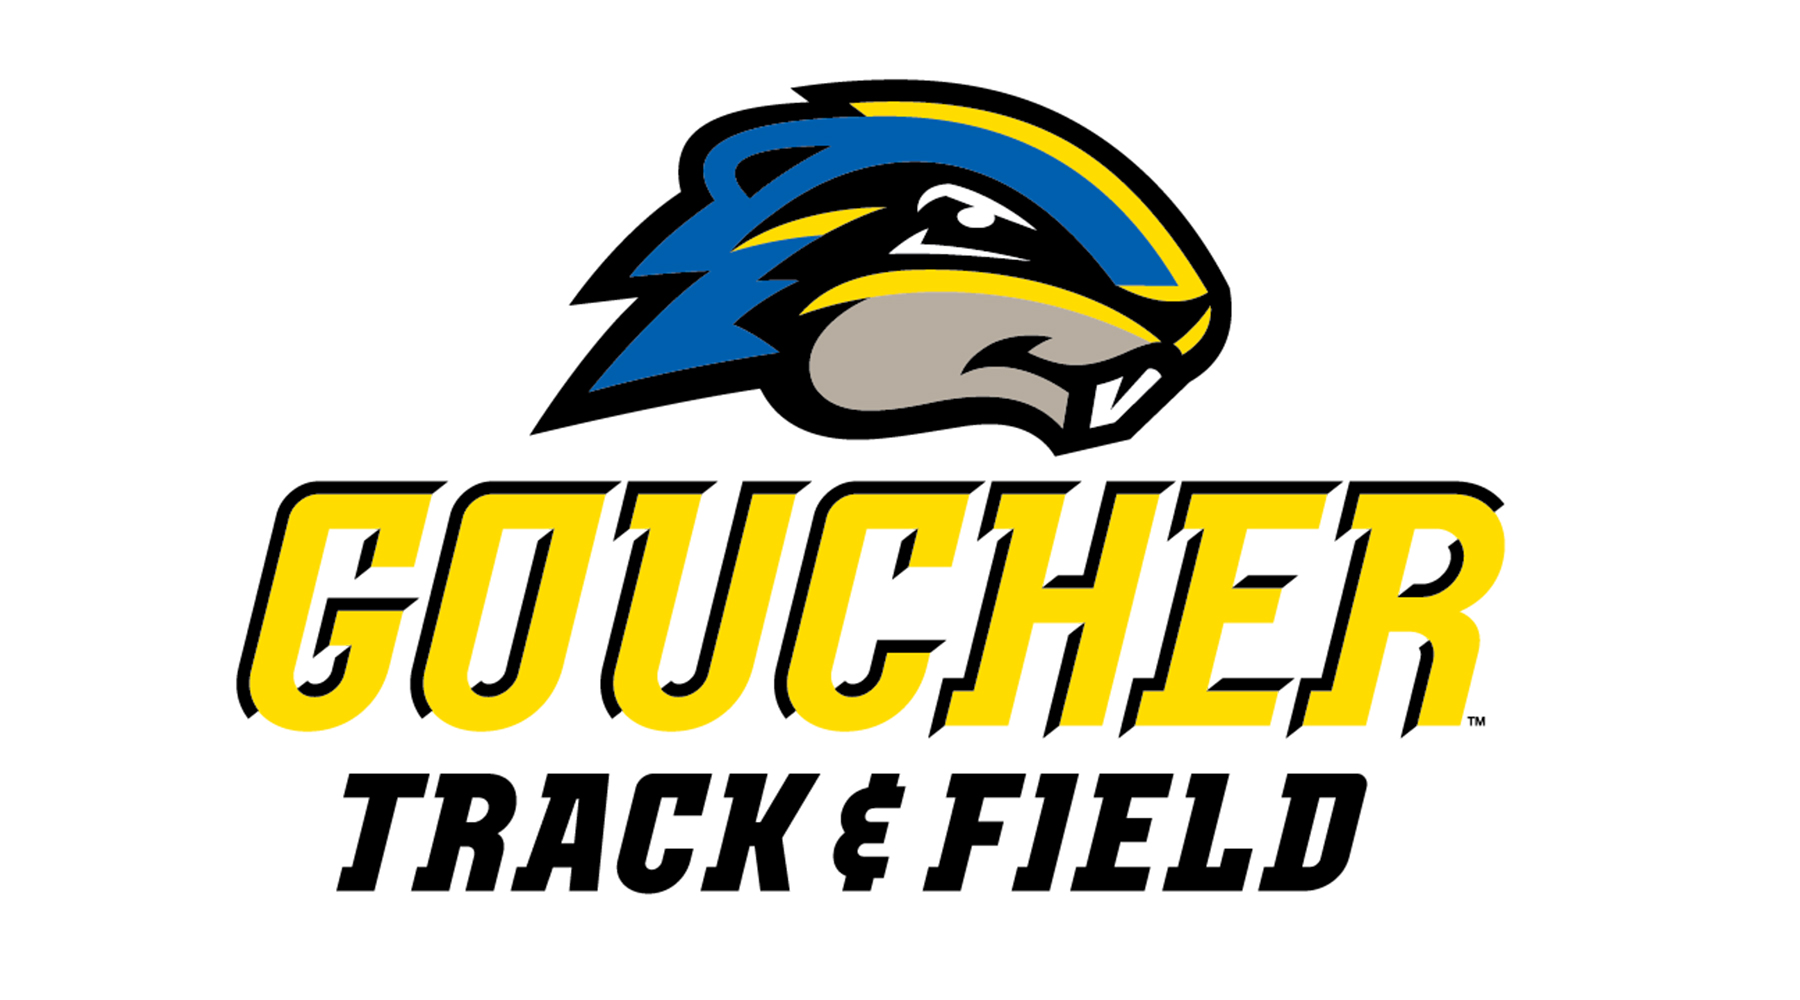 Remnants of Winter Storm Toby Wipes Away 2018 Goucher Track & Field Classic